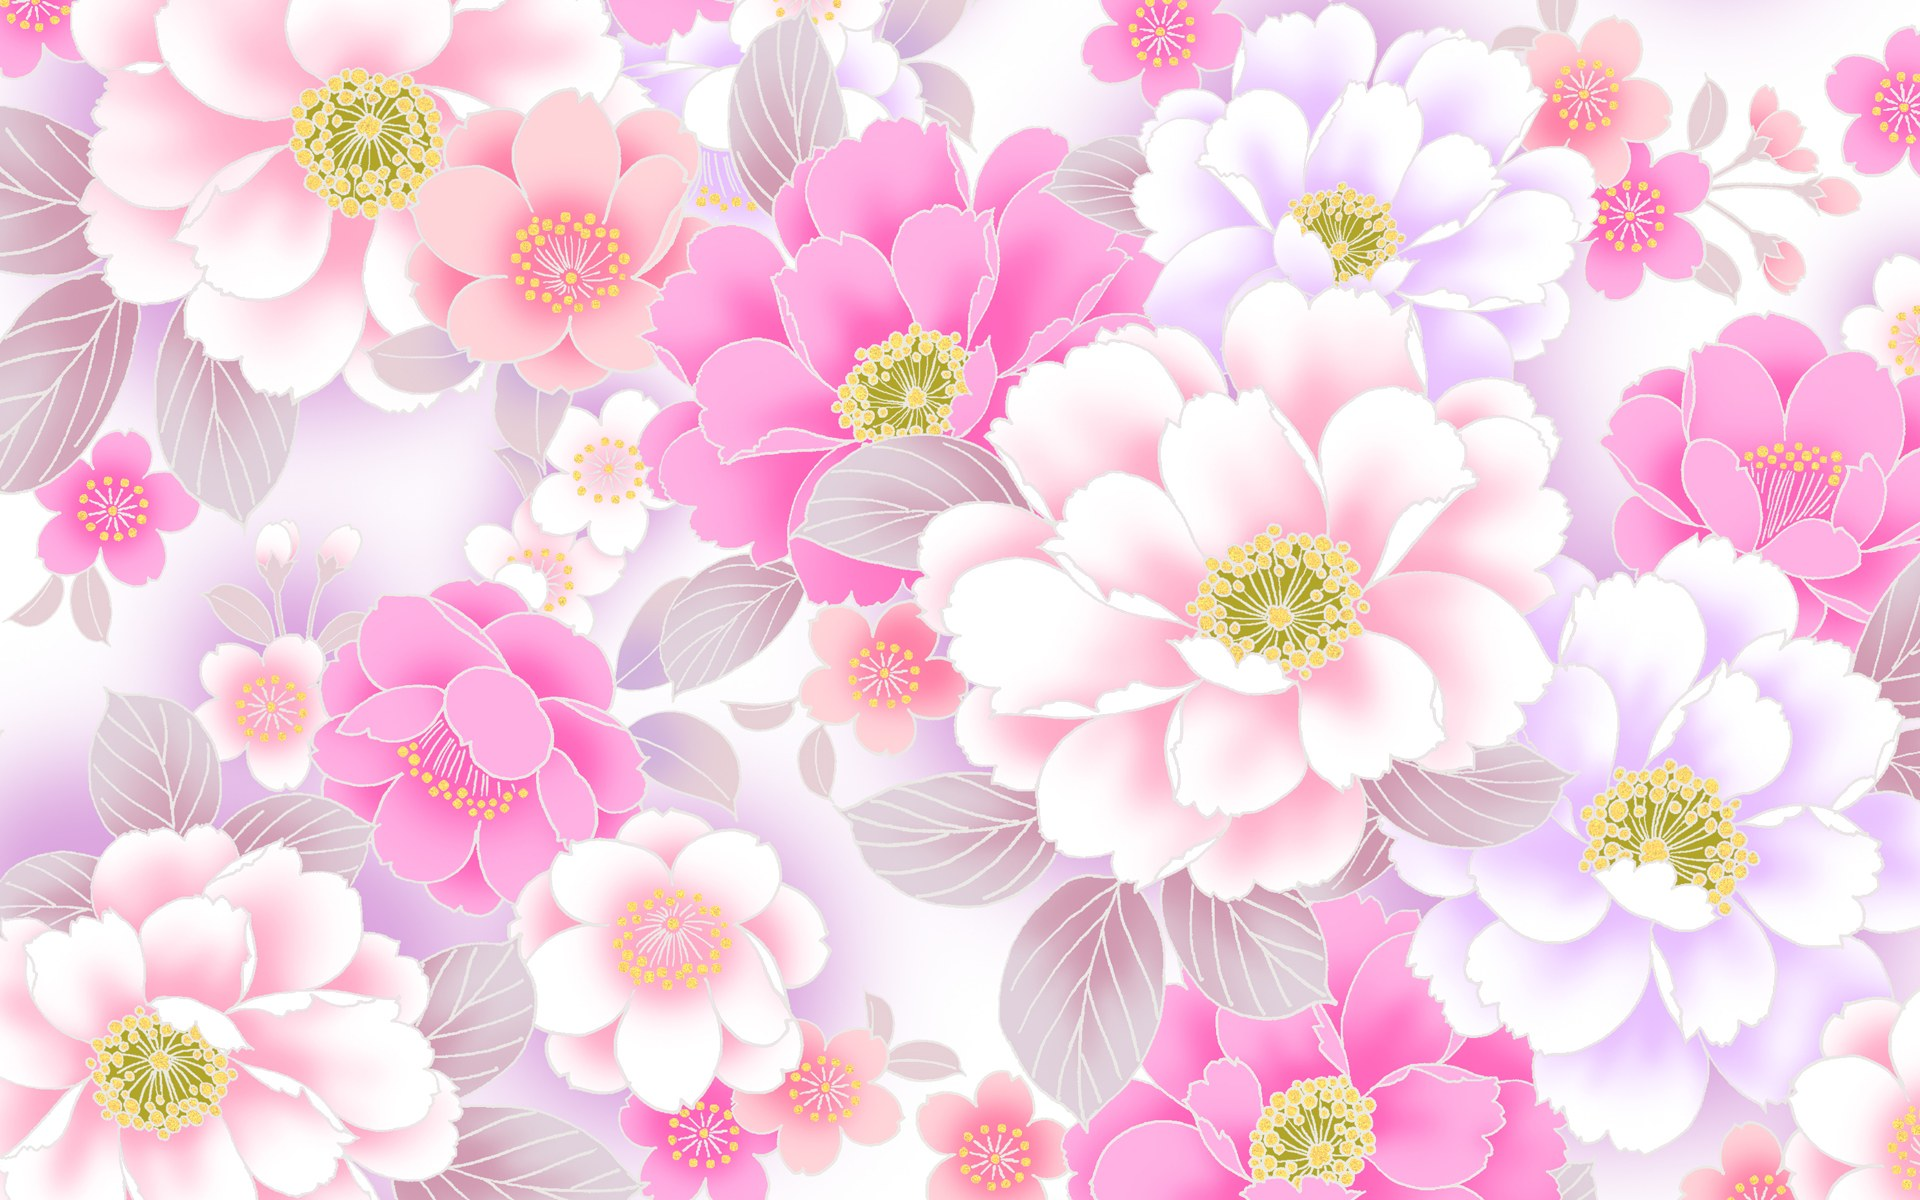 flower art full hd wallpaper and background image | 1920x1200 | id